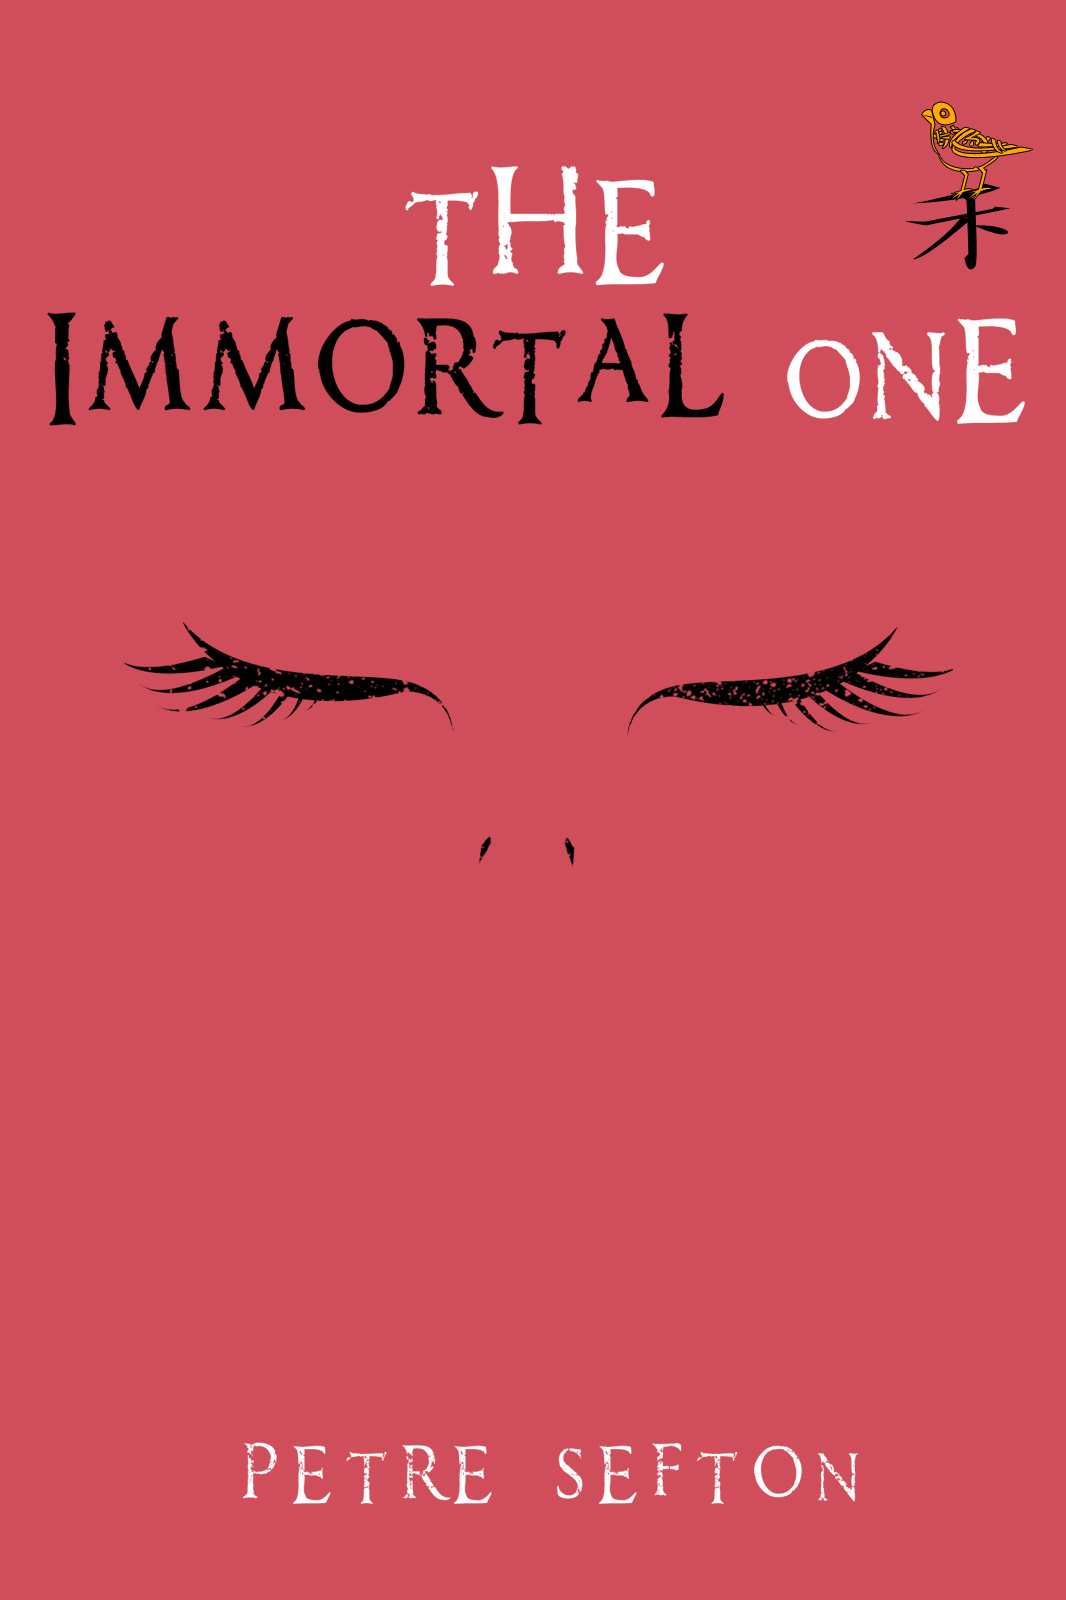 Petre_Sefton_Front cover_The Immortal_On